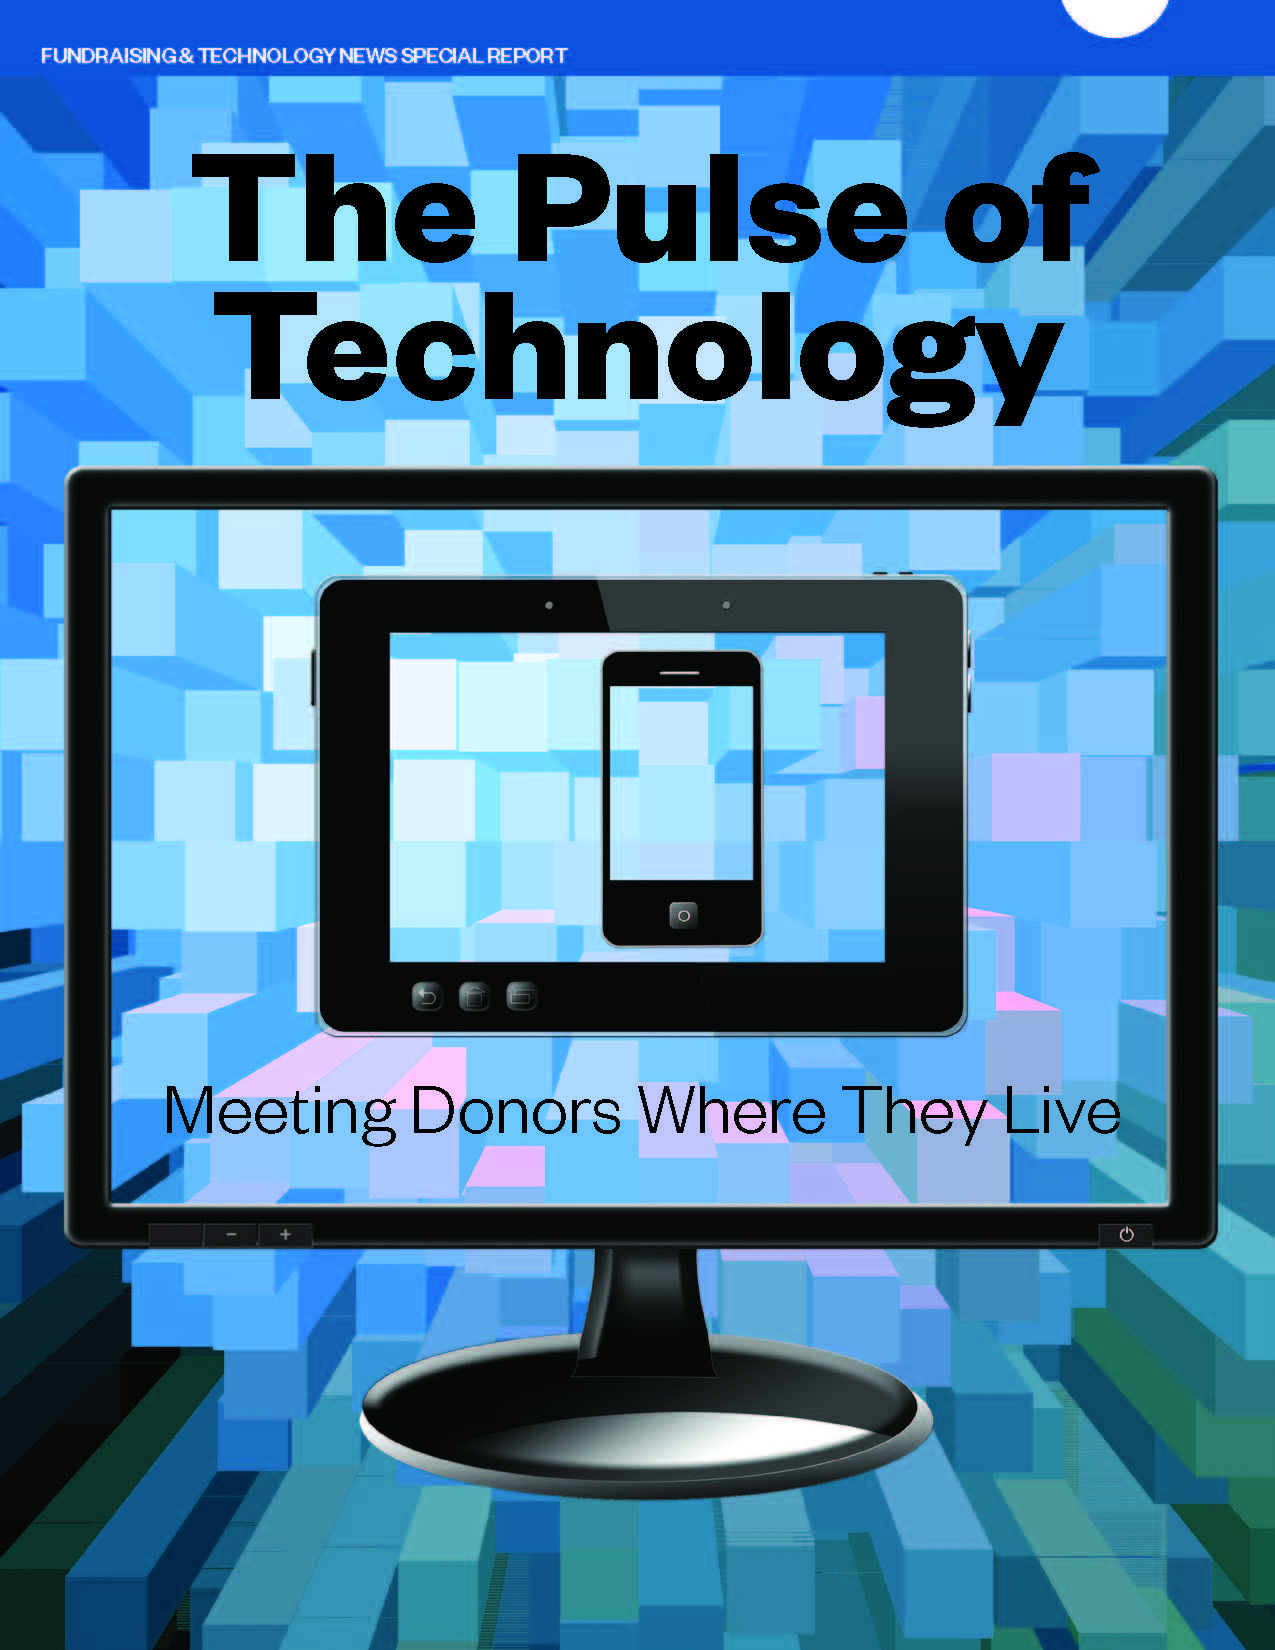 Fundraising: The Pulse of Technology